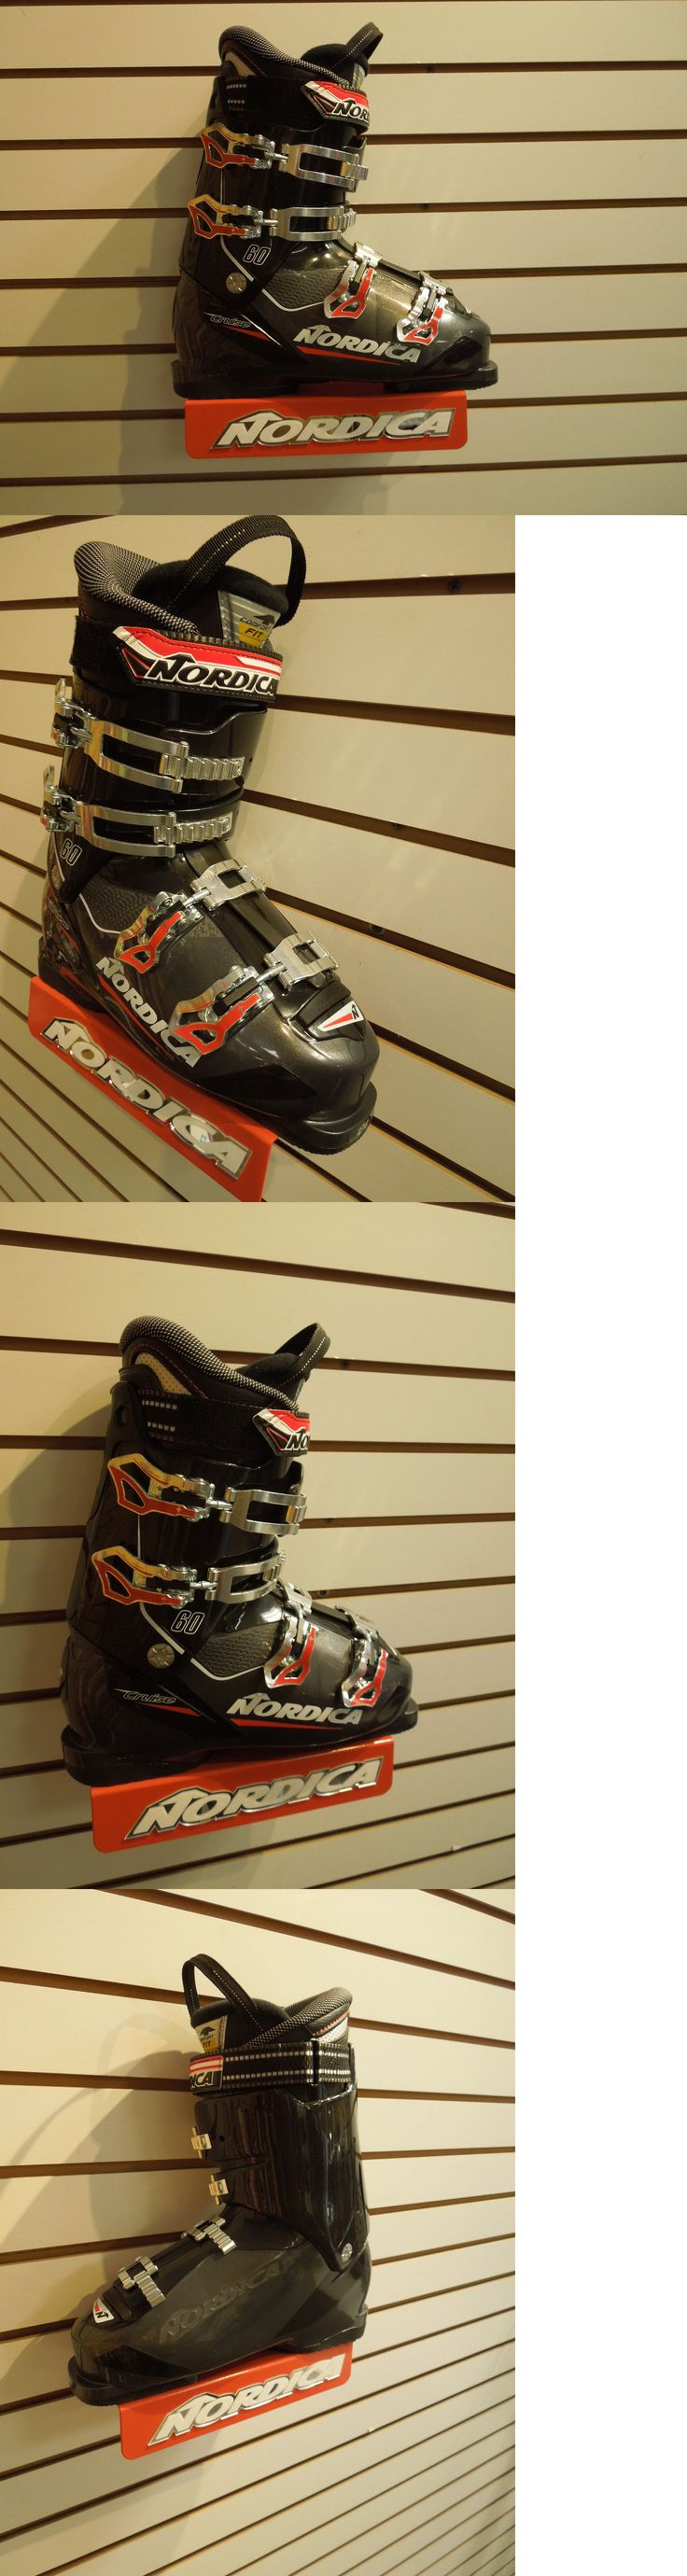 Men 16061: Nordica Cruise 60 Men S Downhill Ski Boots New! -> BUY IT NOW ONLY: $129 on eBay!